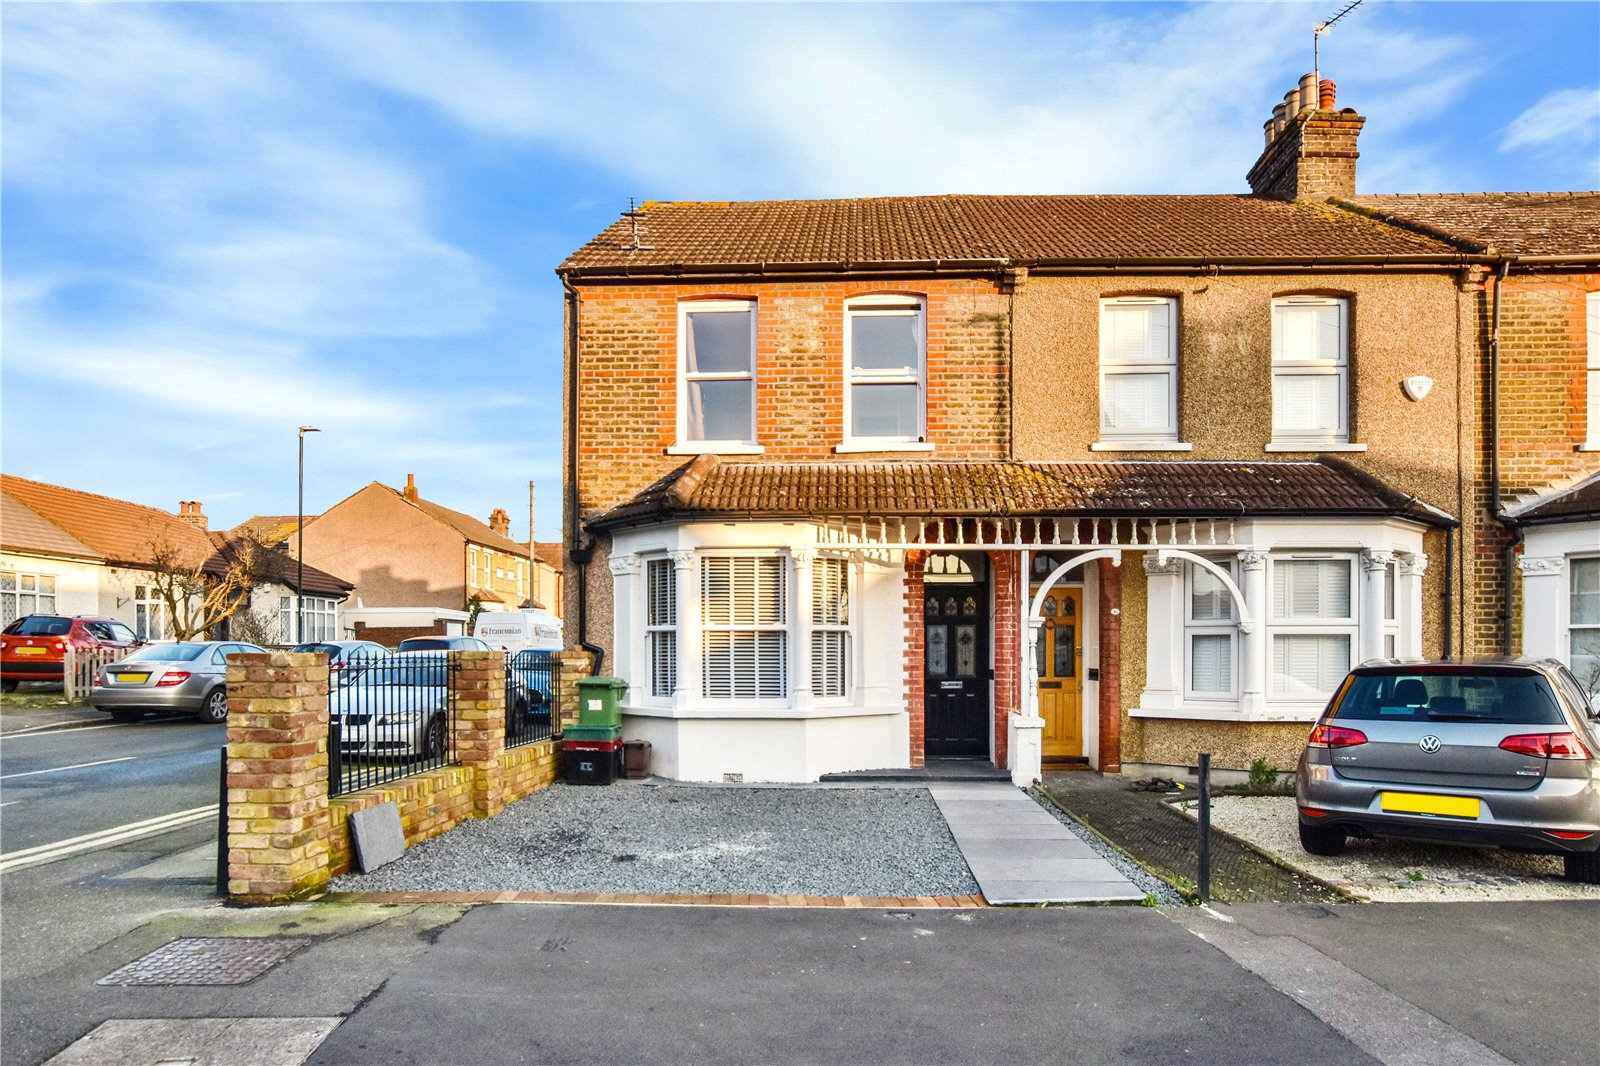 Lion Road, Bexleyheath, DA6